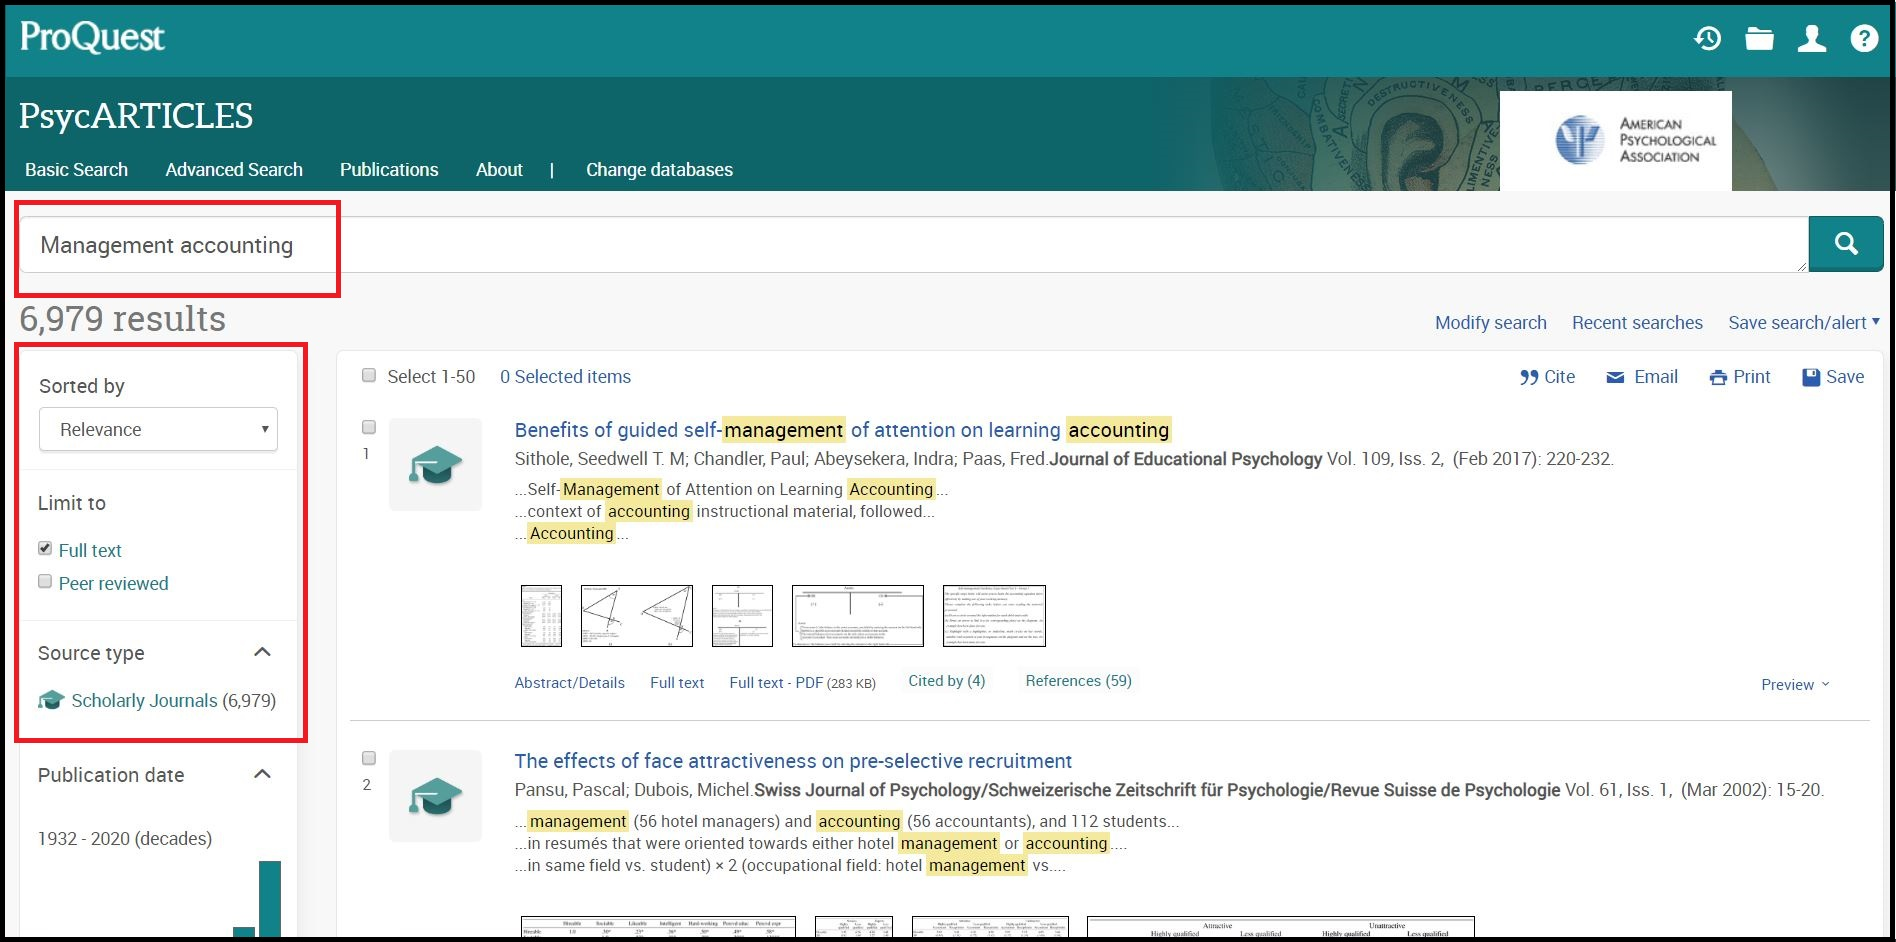 Open ProQuest PsycARTICLES then Search for Required Subject